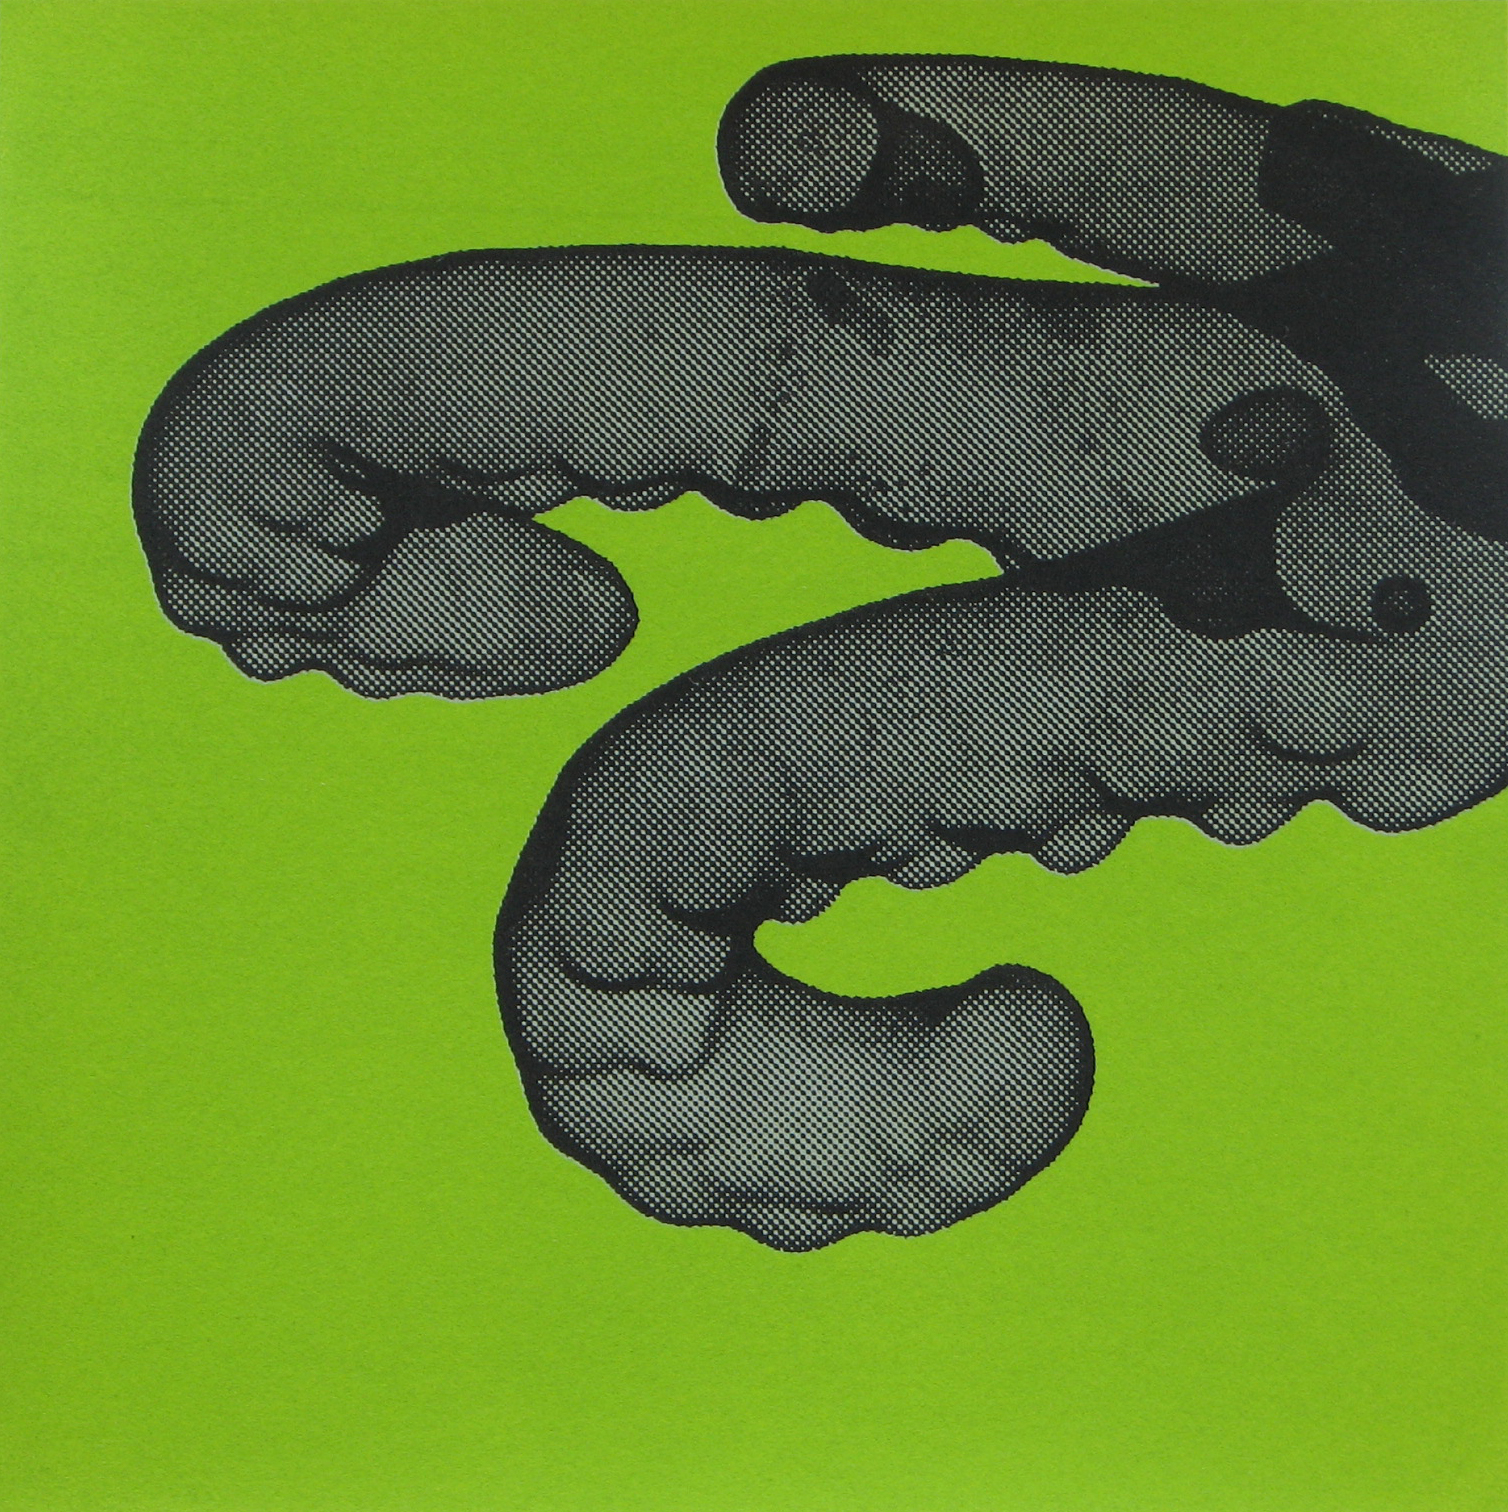 Copy of Erica Seccombe, Tentacles (green) 2007.